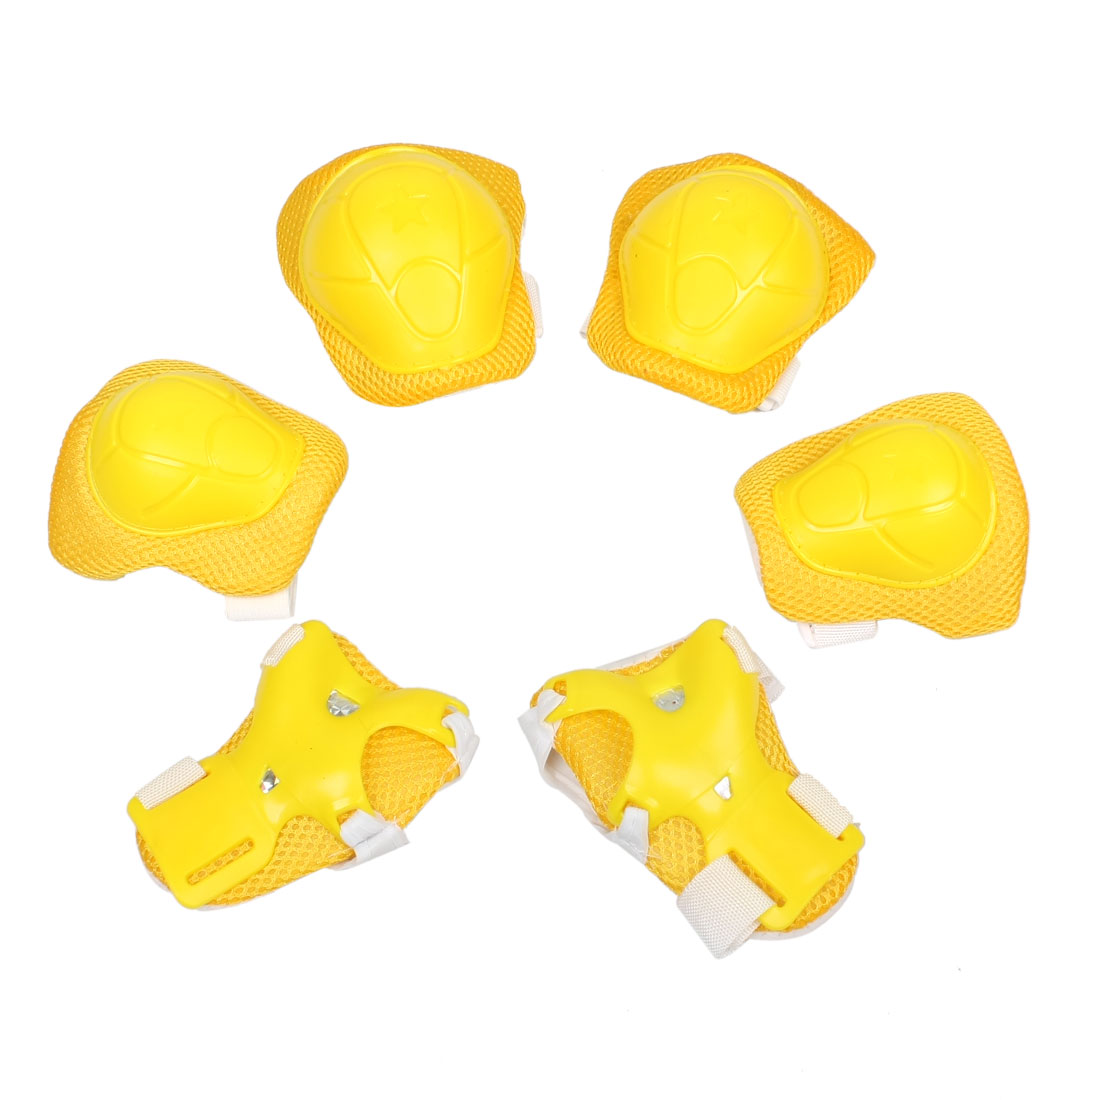 Set 6 in 1 Kids Roller Skating Palm Elbow Knee Support Protector Yellow White